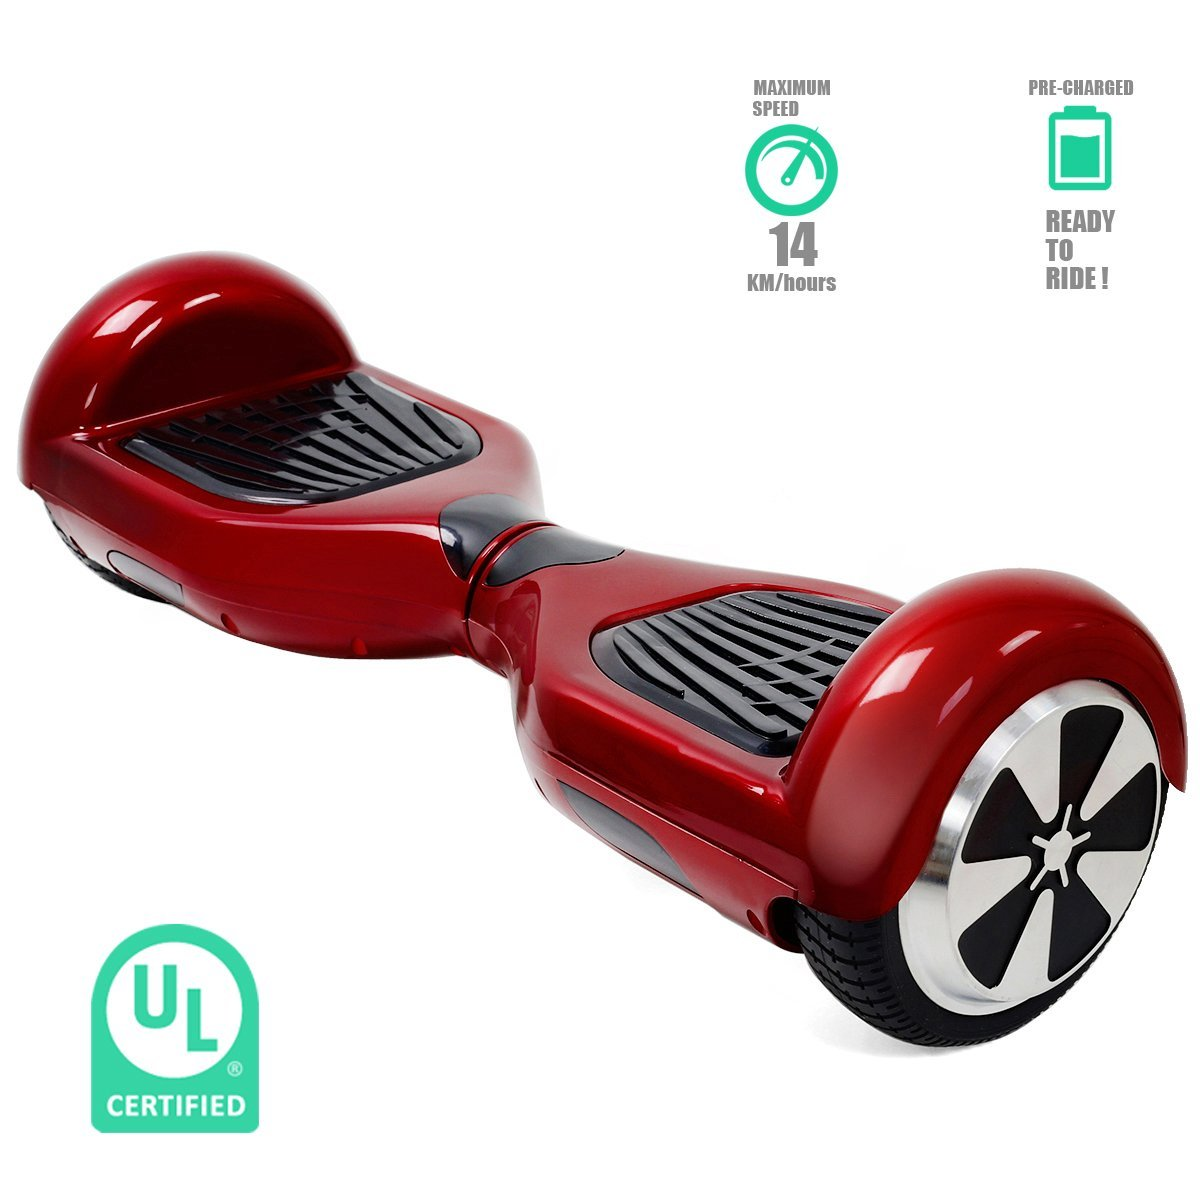 Self-Balancing Scooter 2 Wheels Electric Hoverboard UL Certified Various Colors (red)